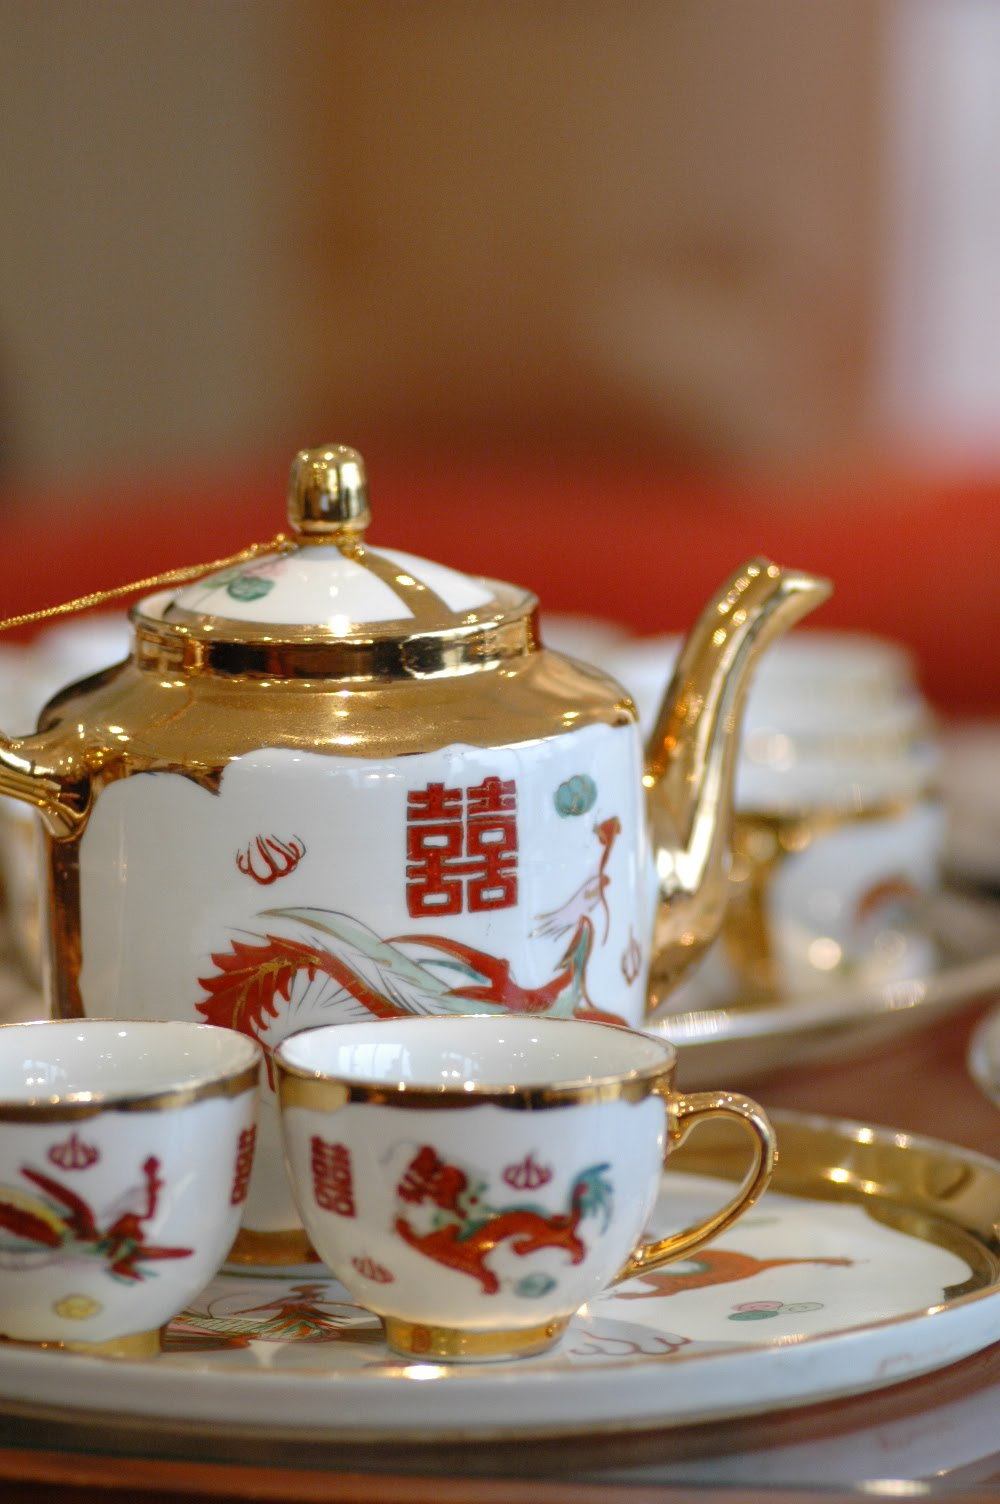 Wei Jien & Sue Lynn's Wedding: Wedding Tea Set